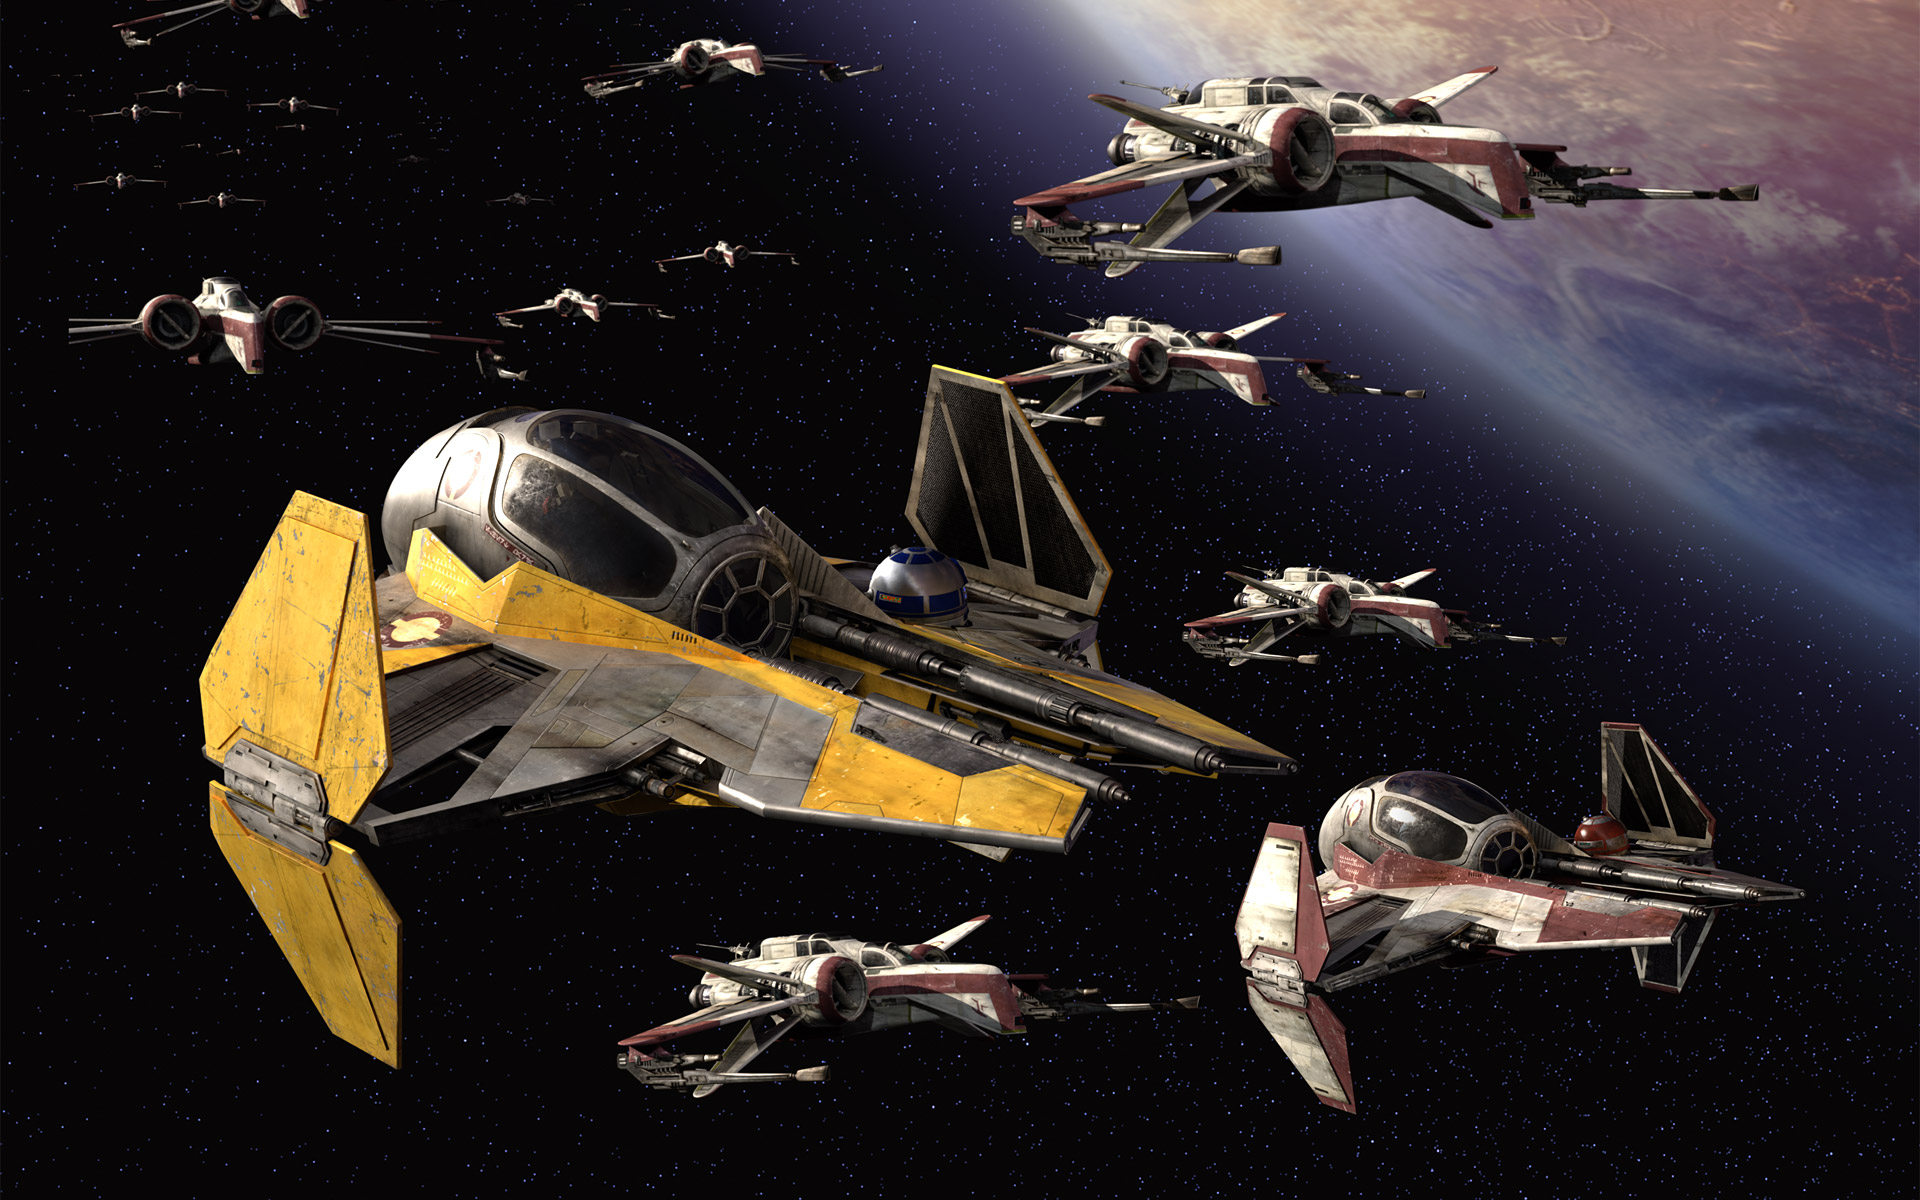 Republic Aerospace Power - Star Wars Wallpaper (24718031) - Fanpop